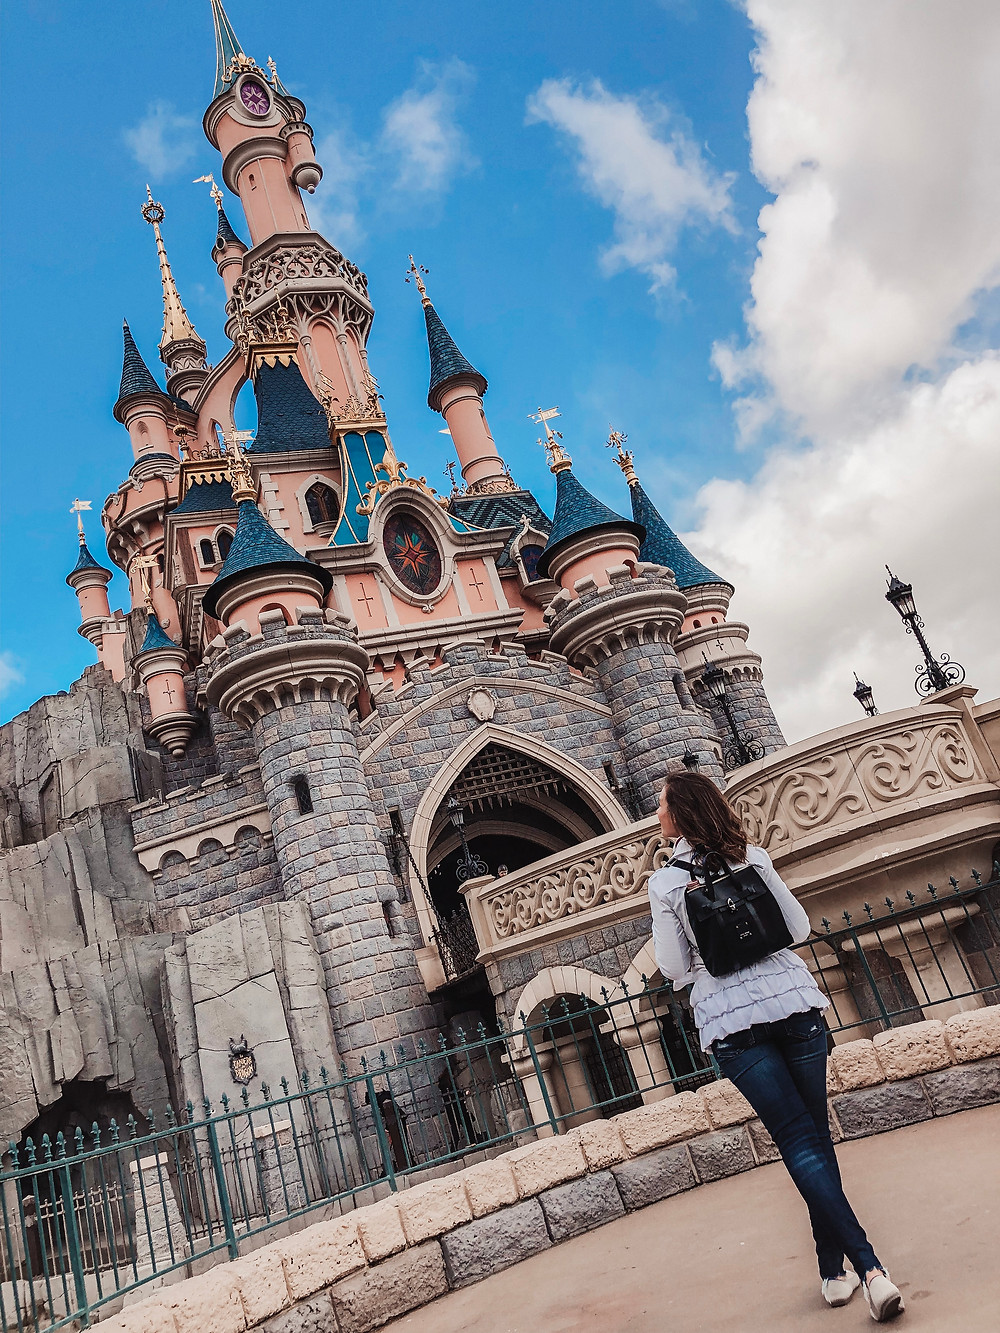 Caitlin Busscher in front of her 6th and final Disney castle in Disneyland Paris